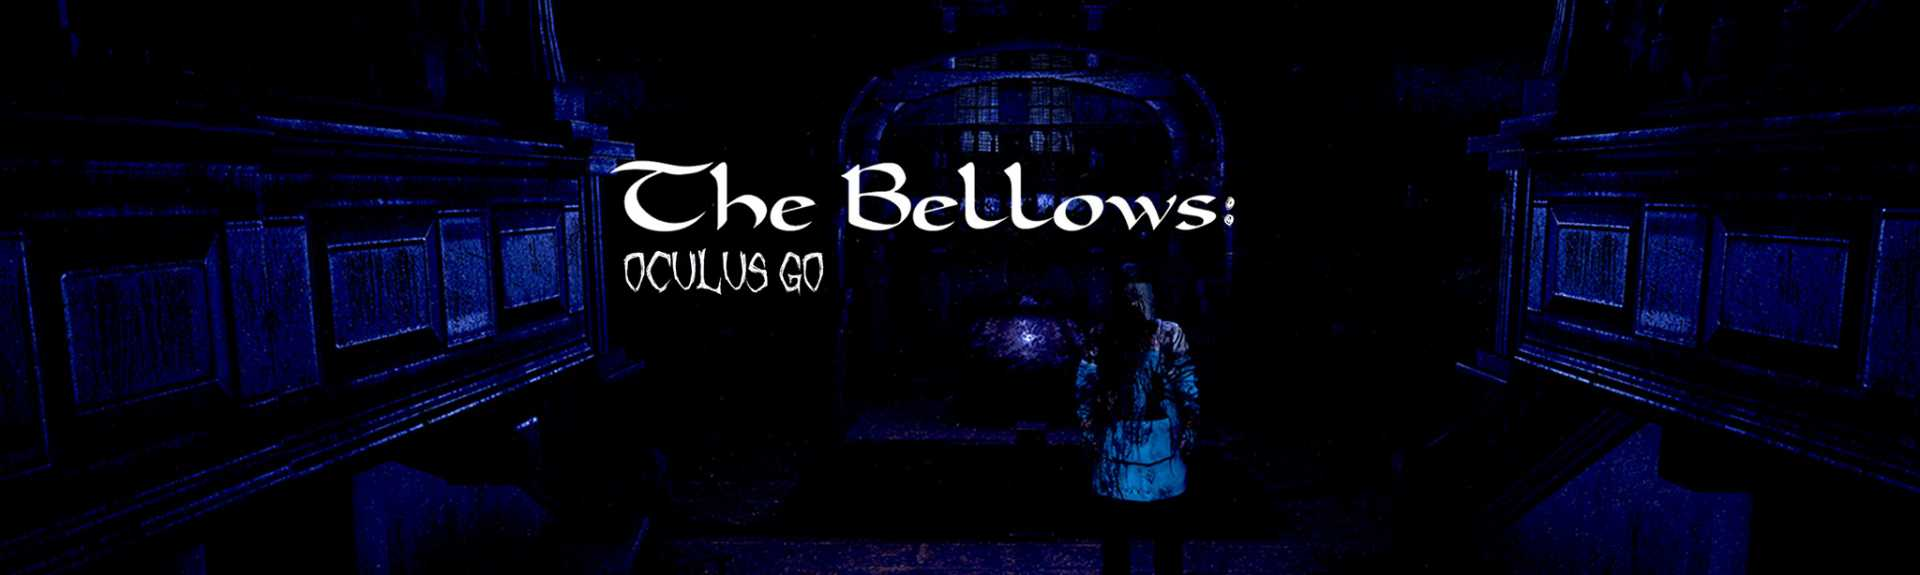 The Bellows: Oculus Go